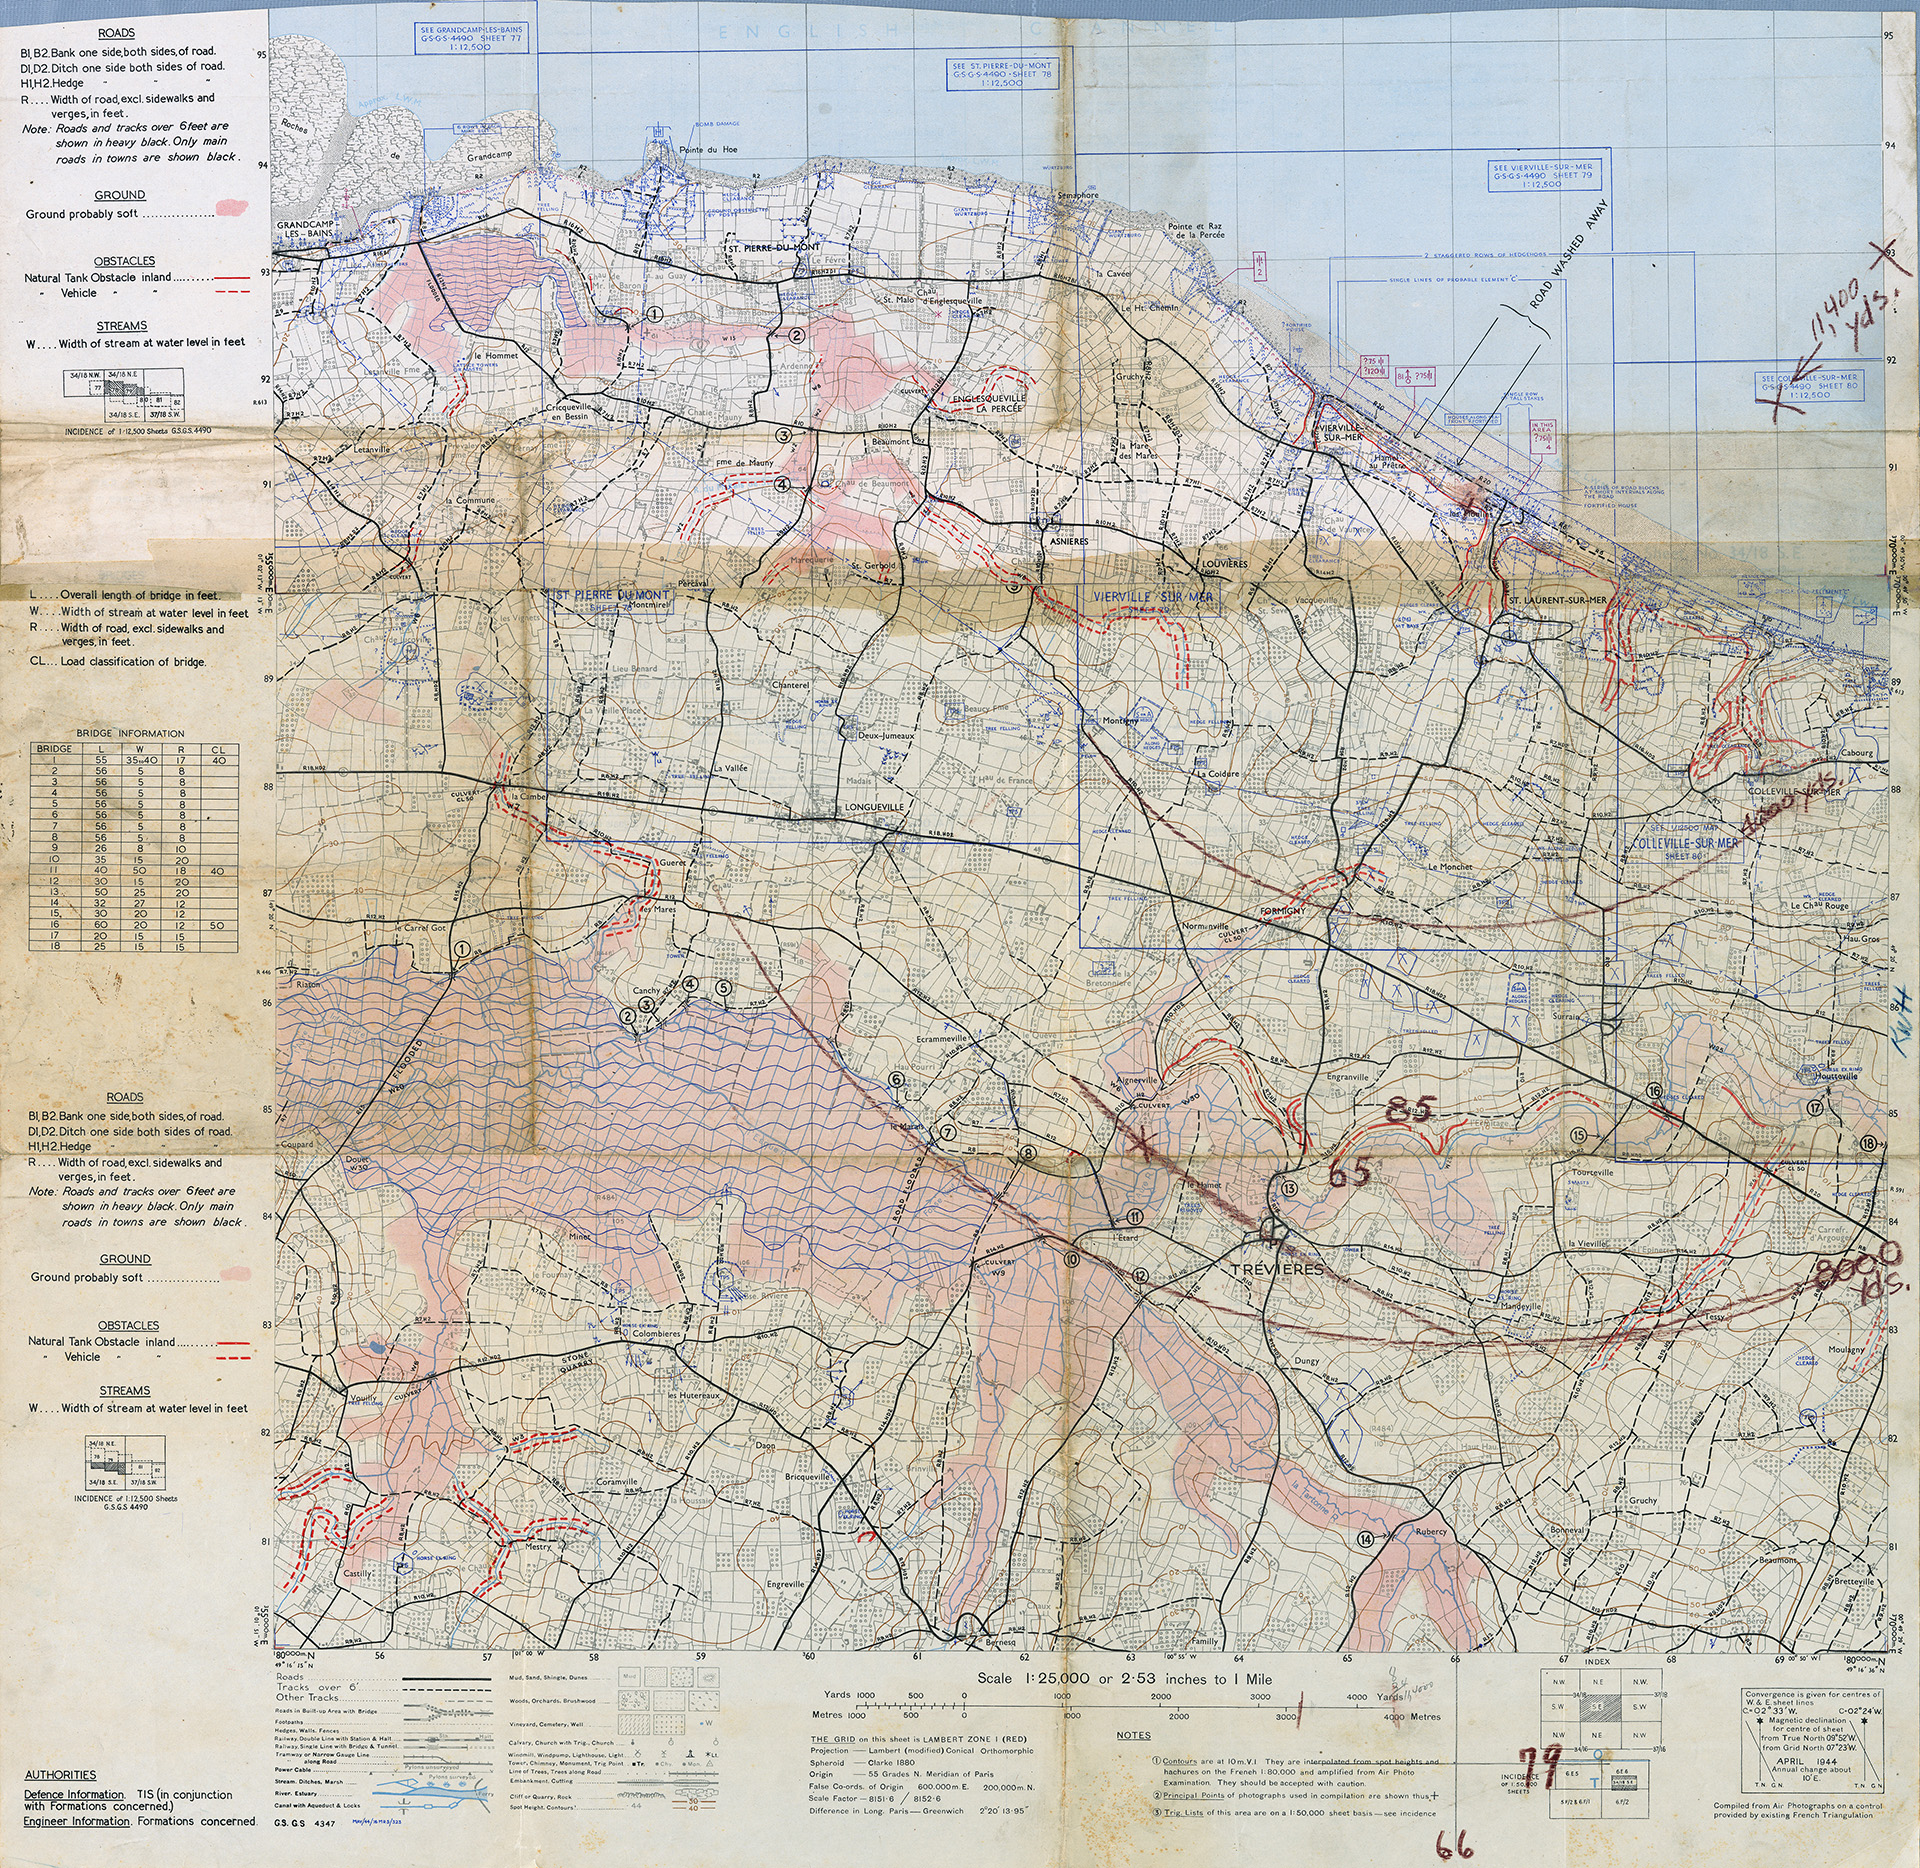 Map used by U.S. Navy, Lieutenant Commander Ron Beery while on sea duty in the Atlantic amphibious force during the assault on the Coast of Normandy, France.